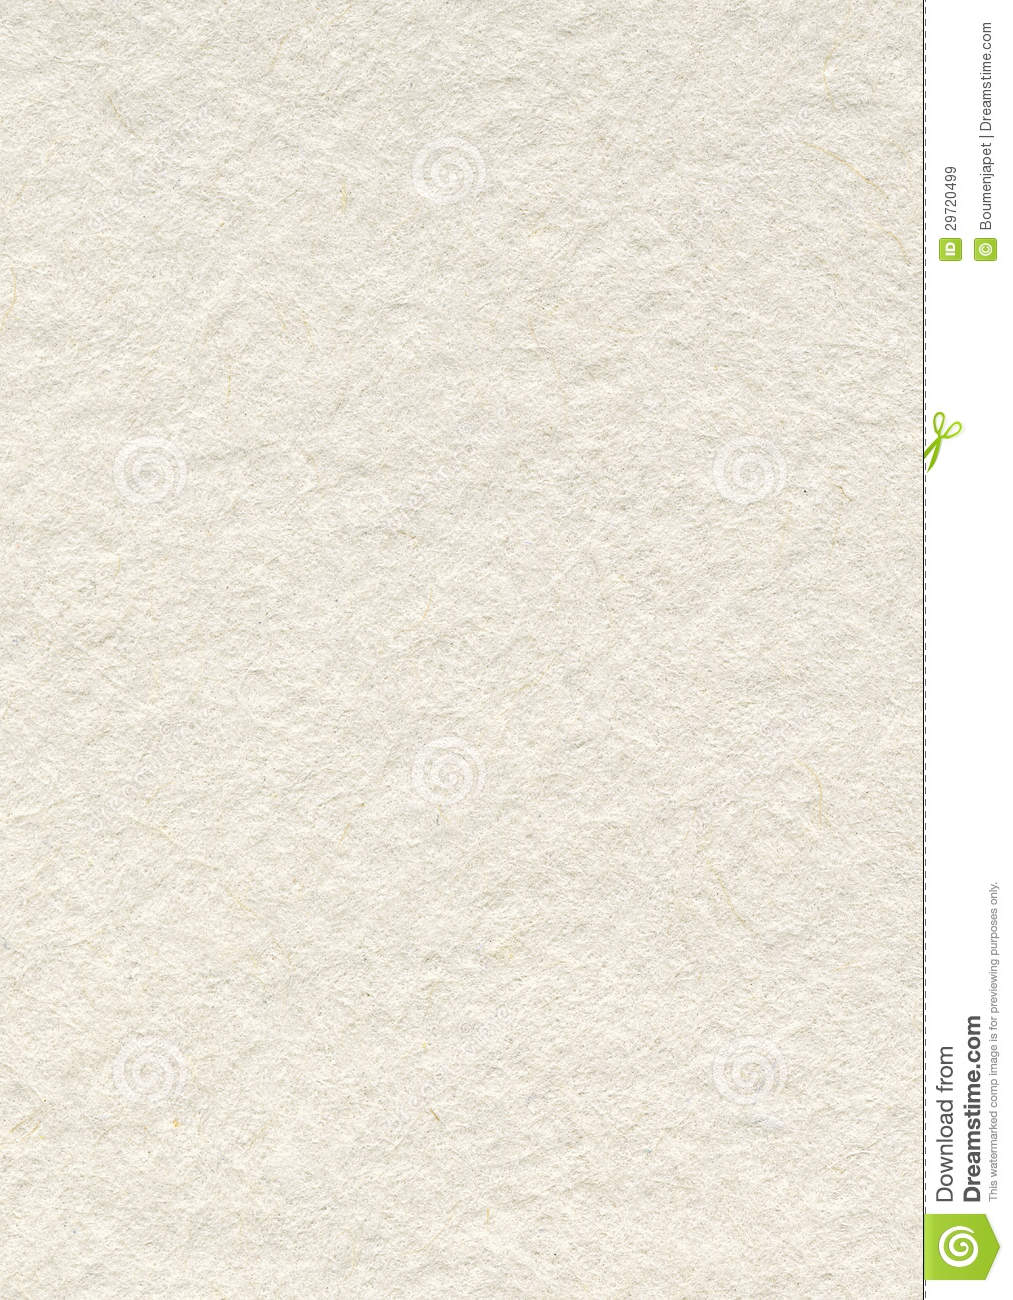 WATERCOLOR PAPER TEXTURE Royalty Free Stock Images - Image: 29720499